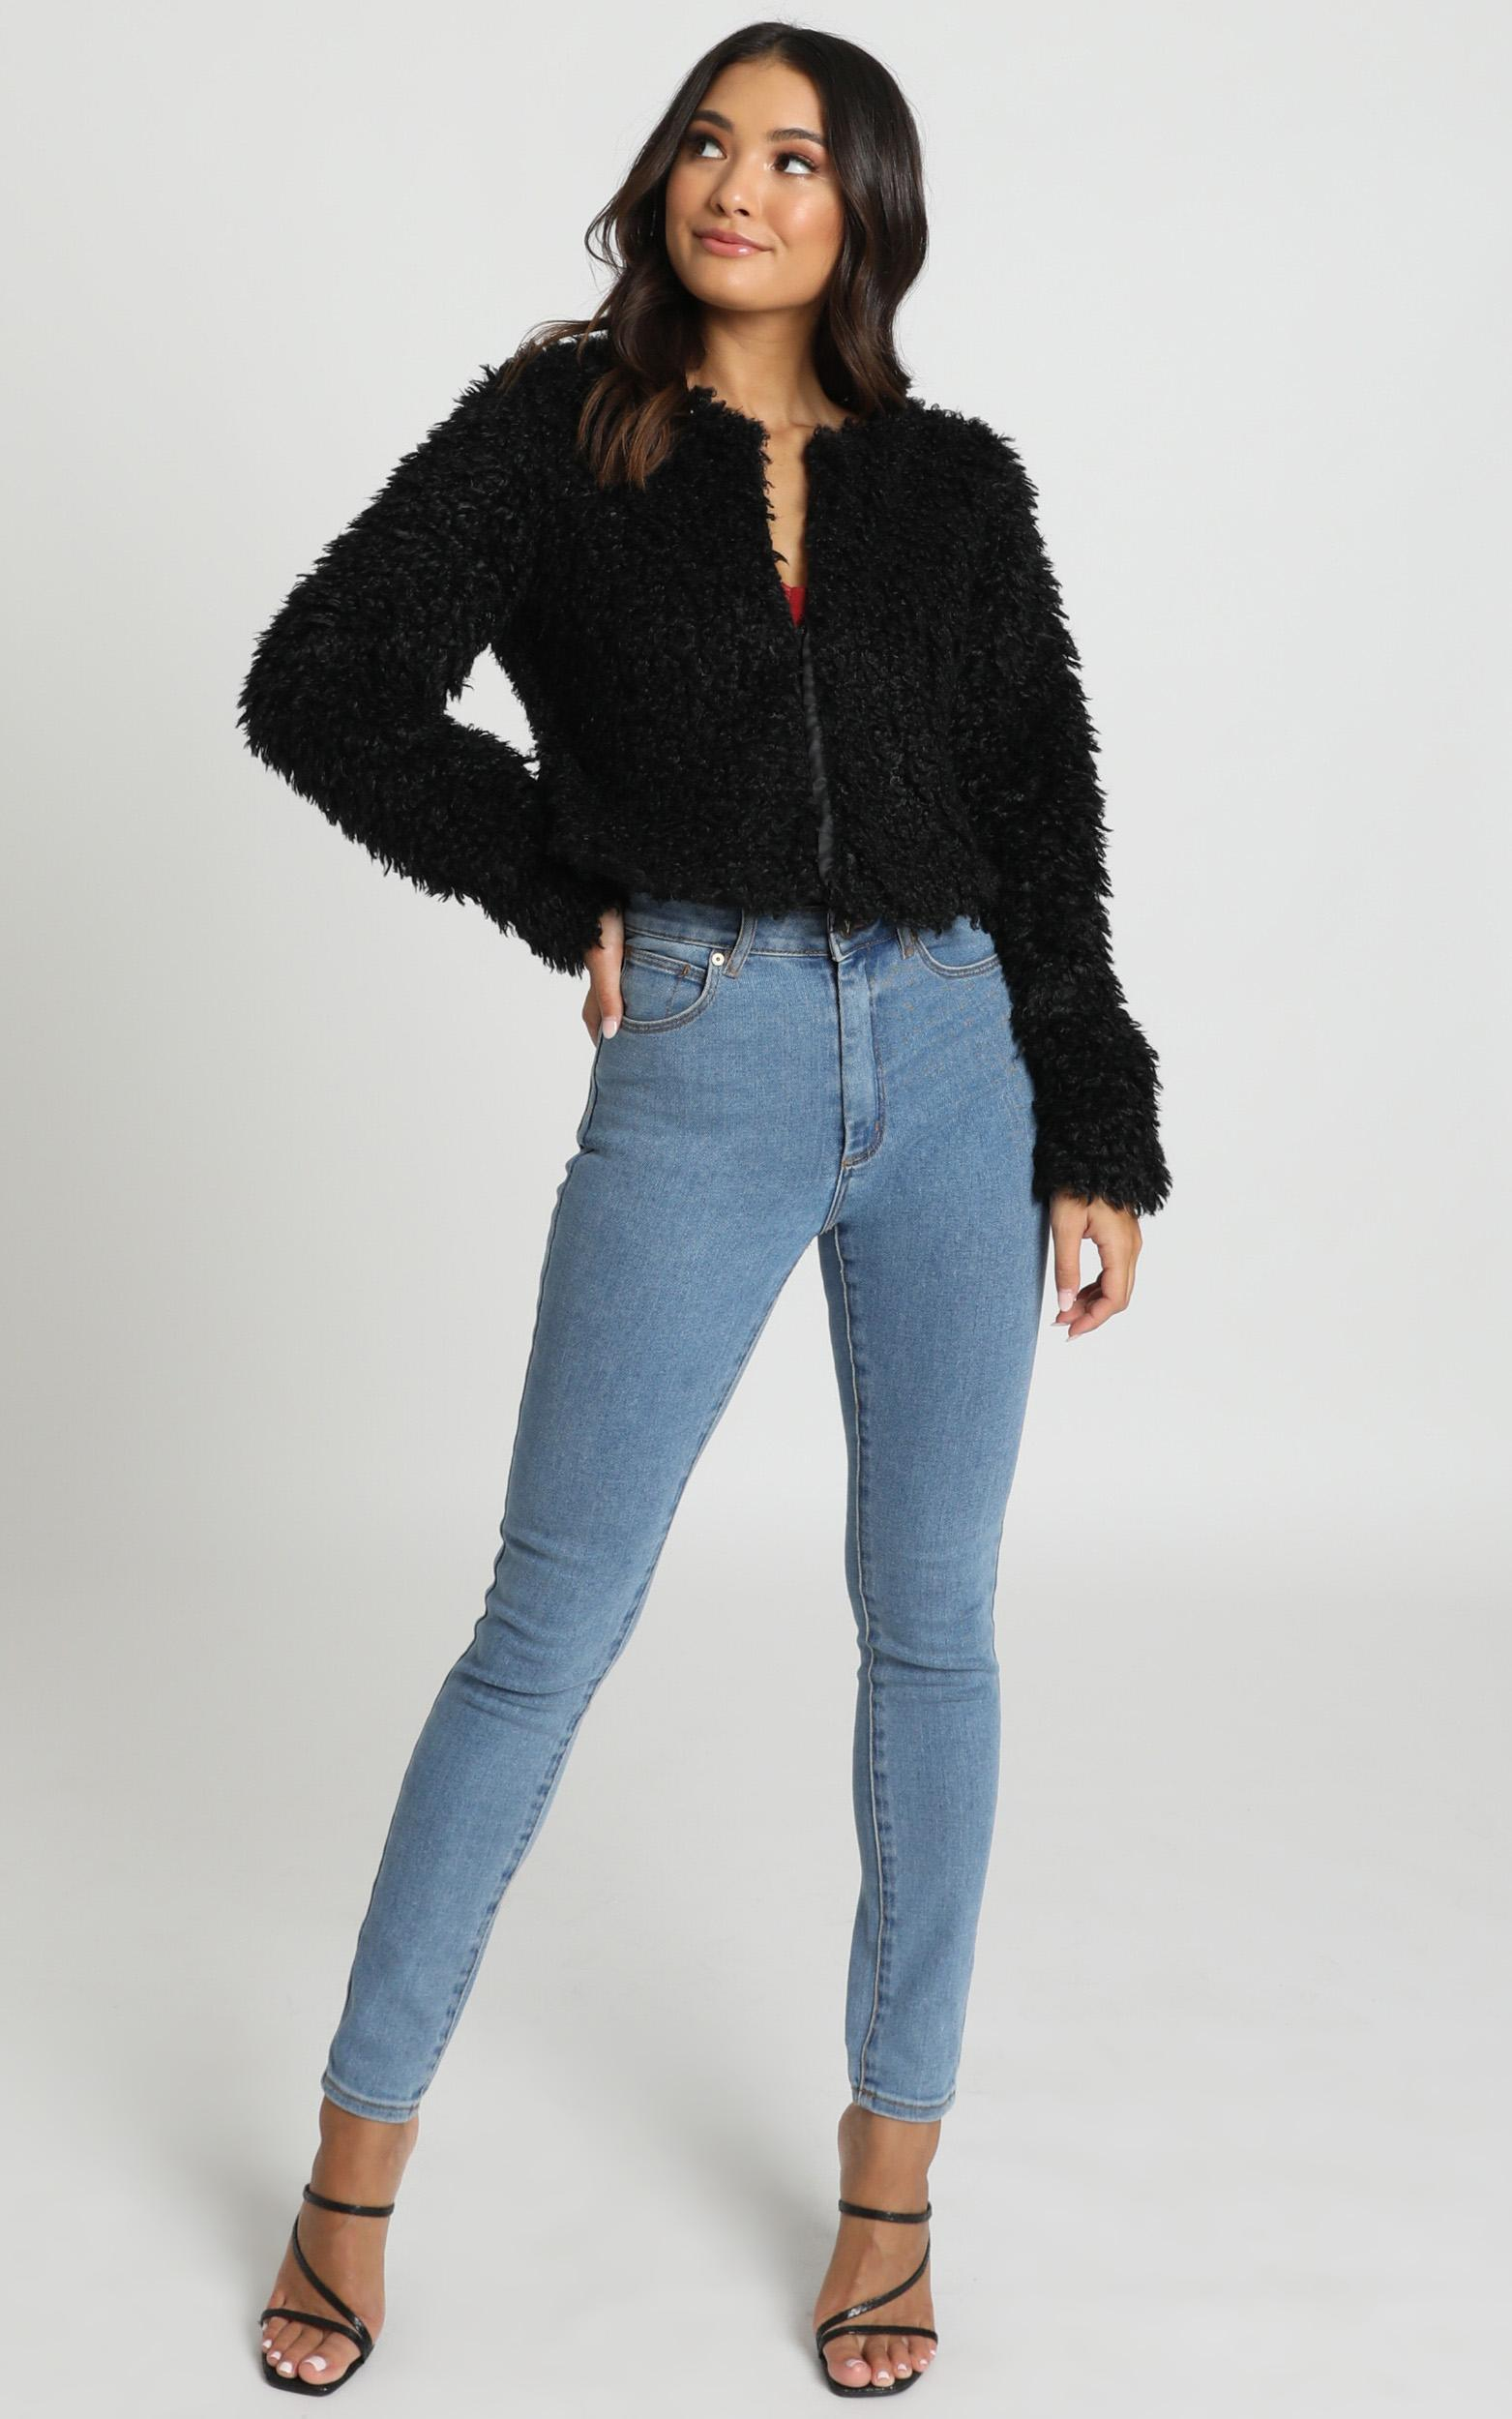 Keeping Cosy Jacket in black - 6 (XS), Black, hi-res image number null